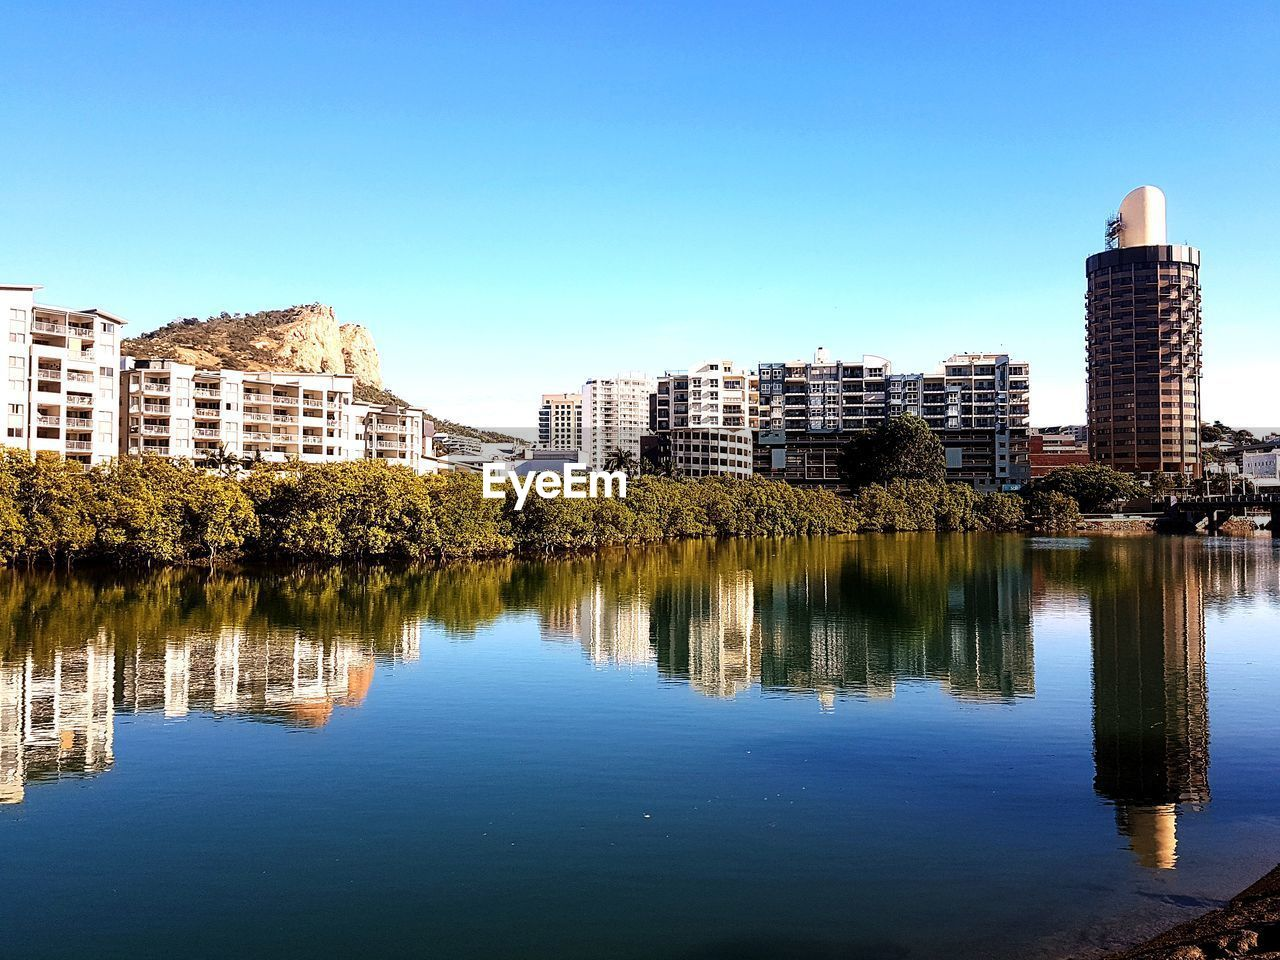 architecture, building exterior, built structure, reflection, clear sky, skyscraper, waterfront, tree, city, no people, water, outdoors, blue, growth, day, modern, cityscape, nature, sky